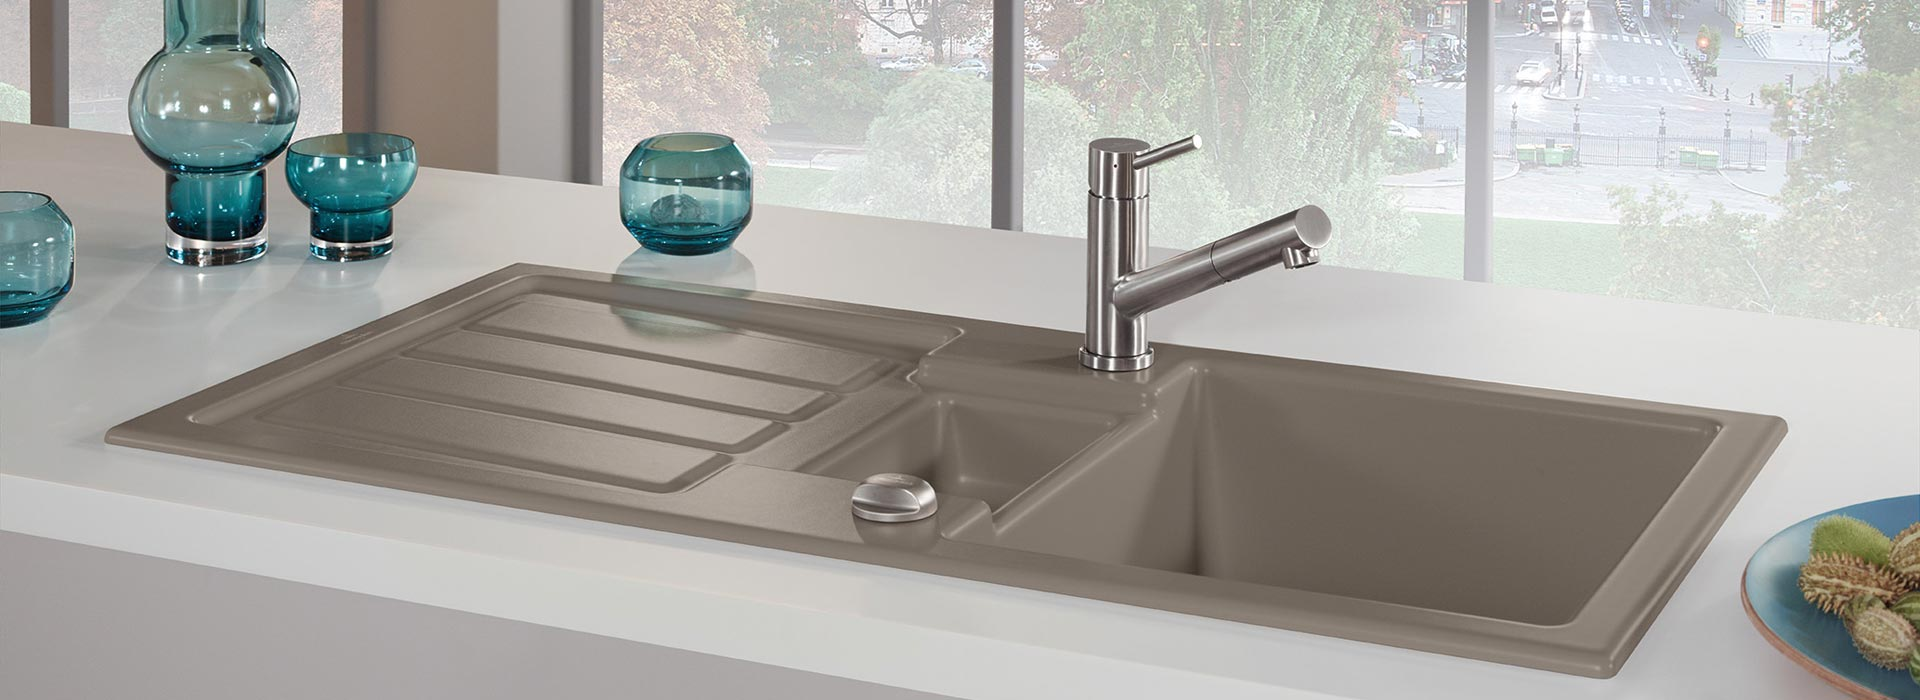 Built in sink in outstanding quality from villeroy boch built in sink flavia 60 workwithnaturefo